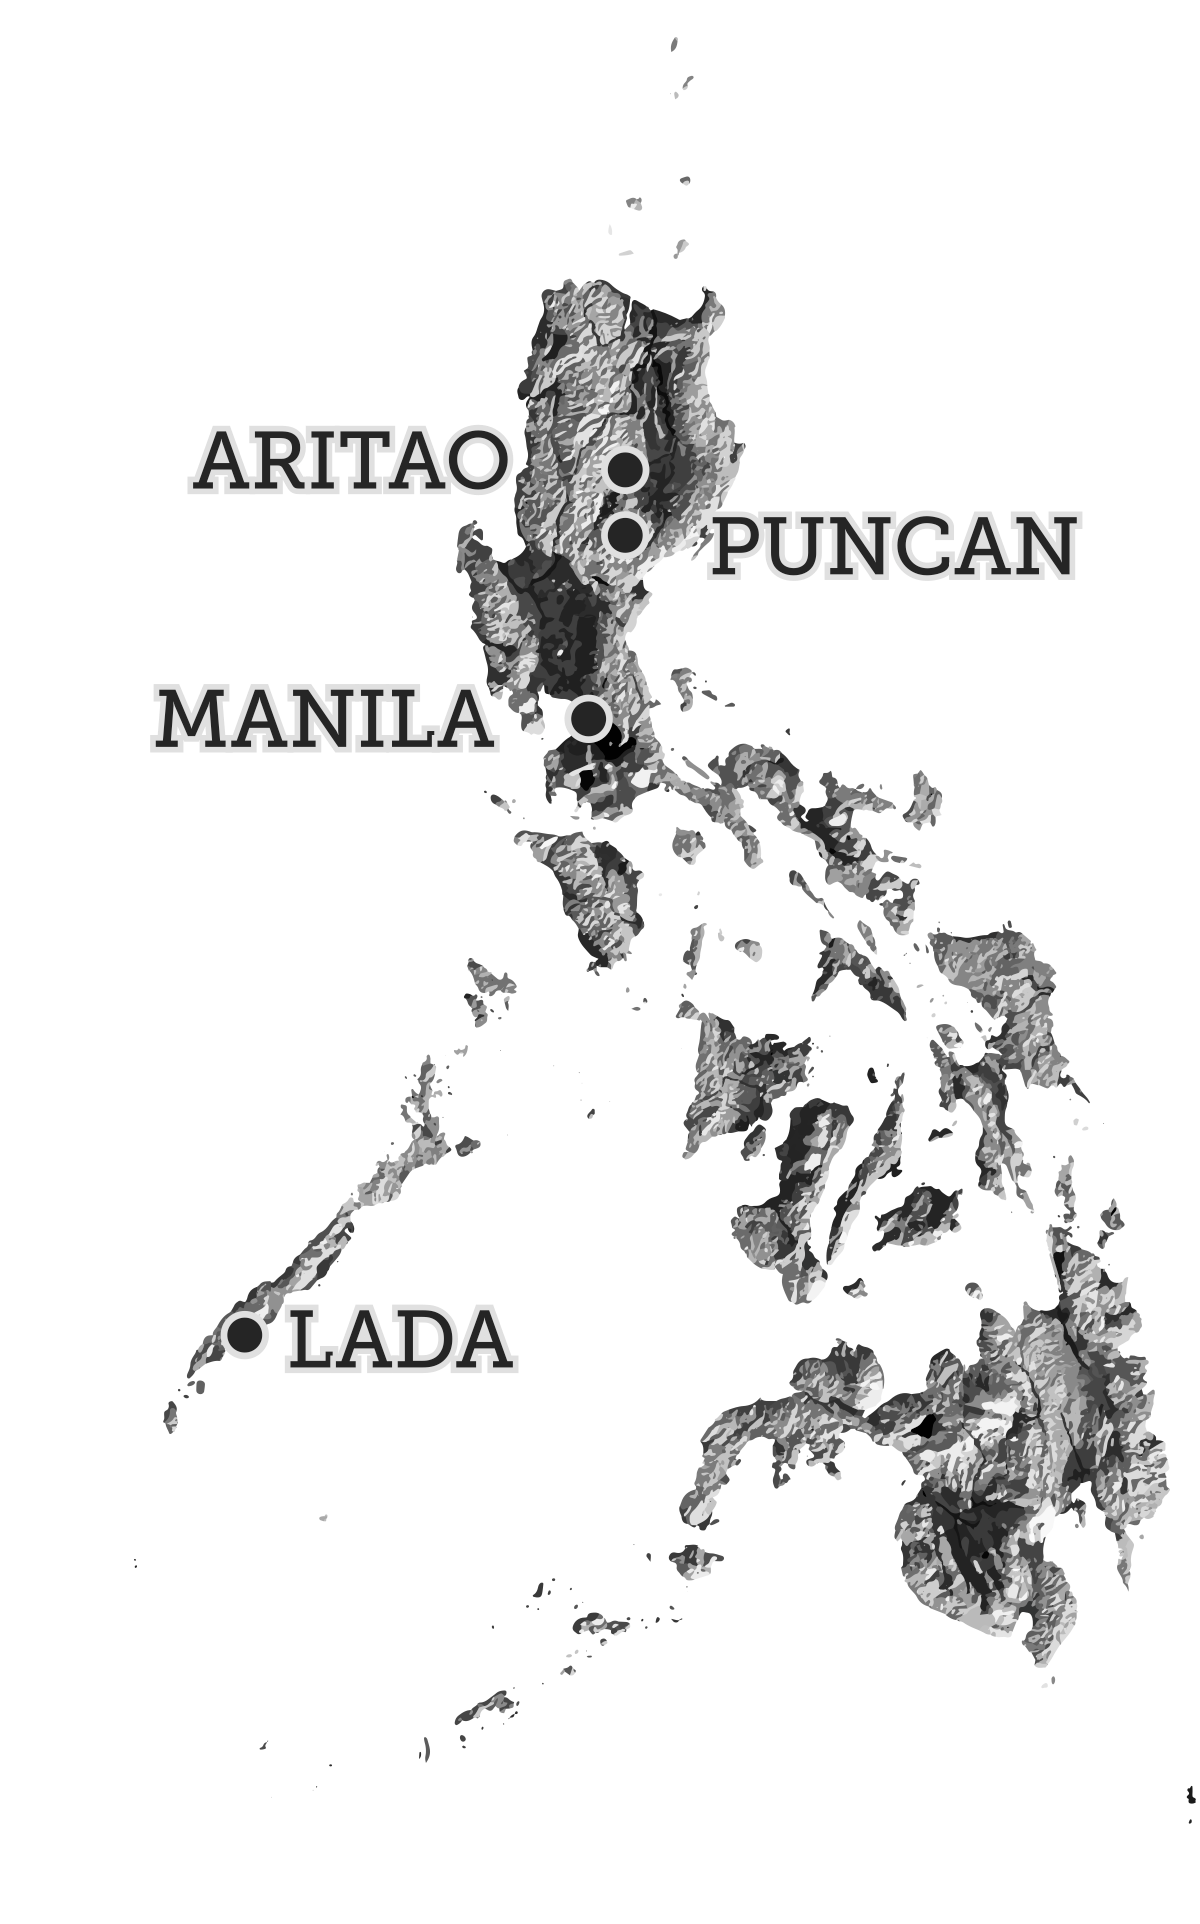 Philippine Islands Image with Topography and 4 Locations